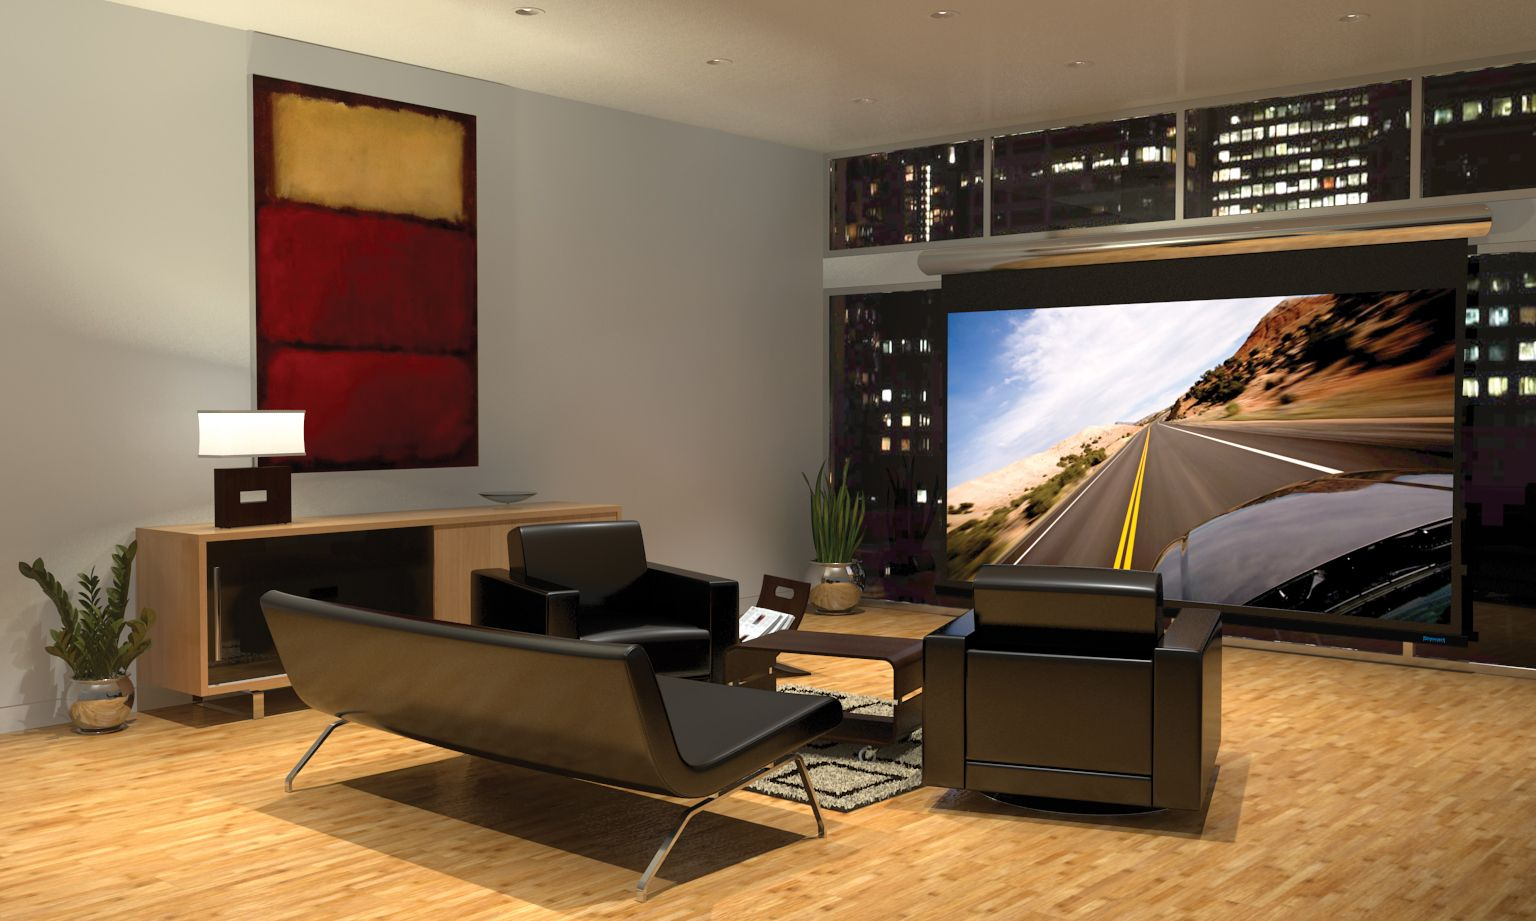 20 beautiful entertainment room ideas modern homeshome theater designhome